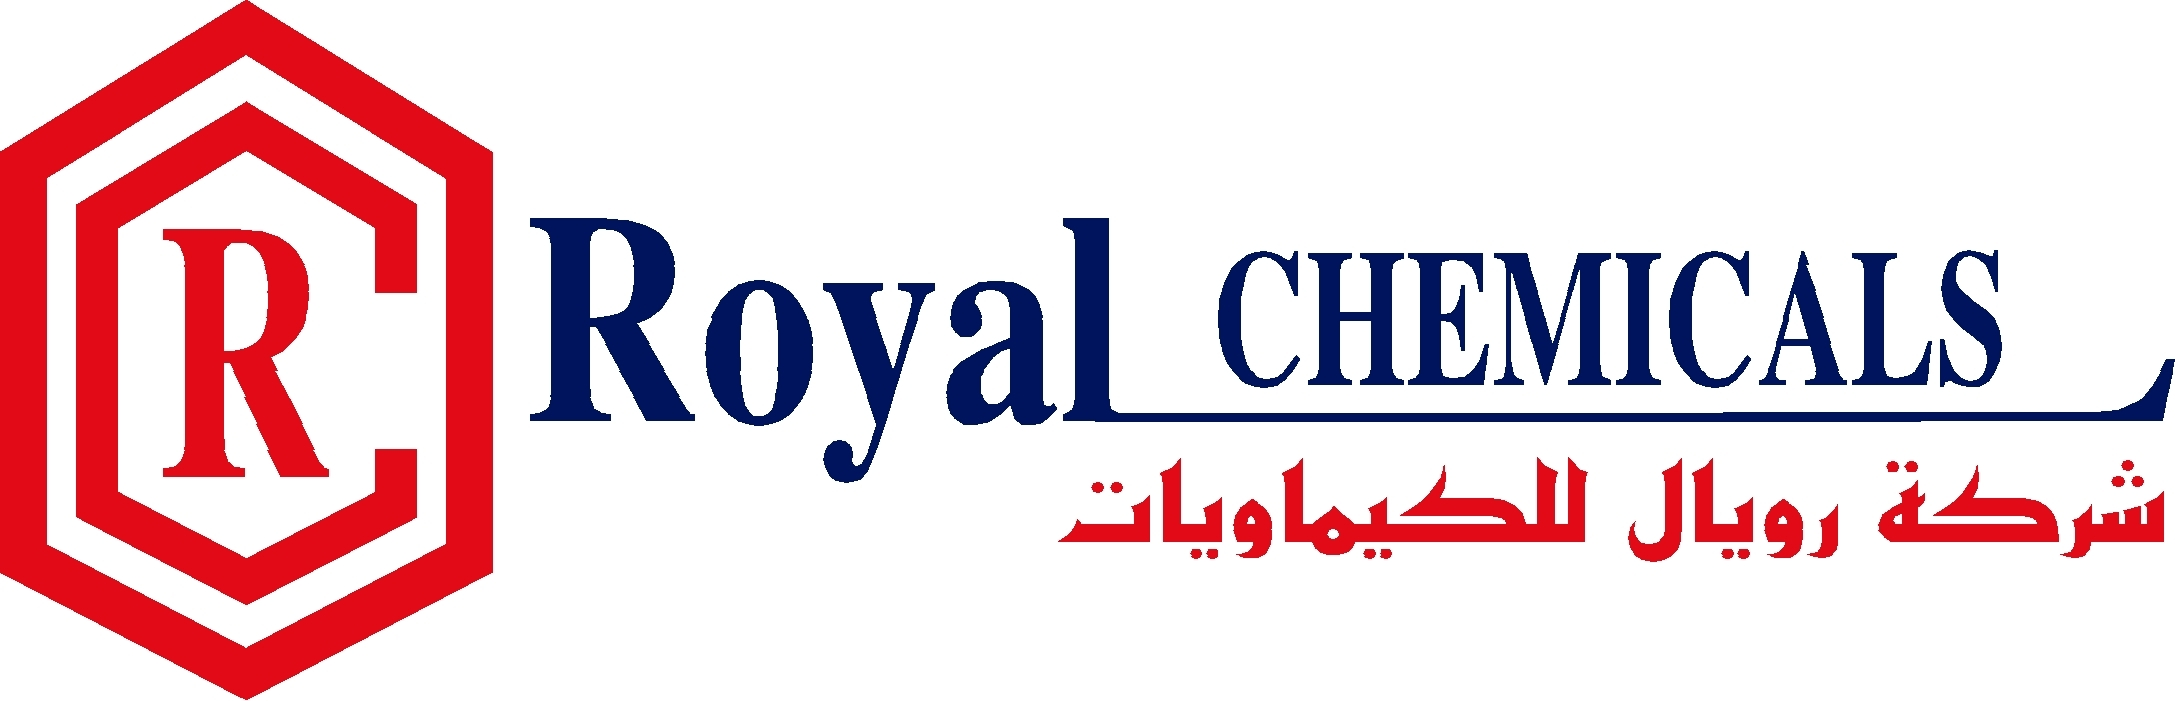 Royal Chemicals Co.